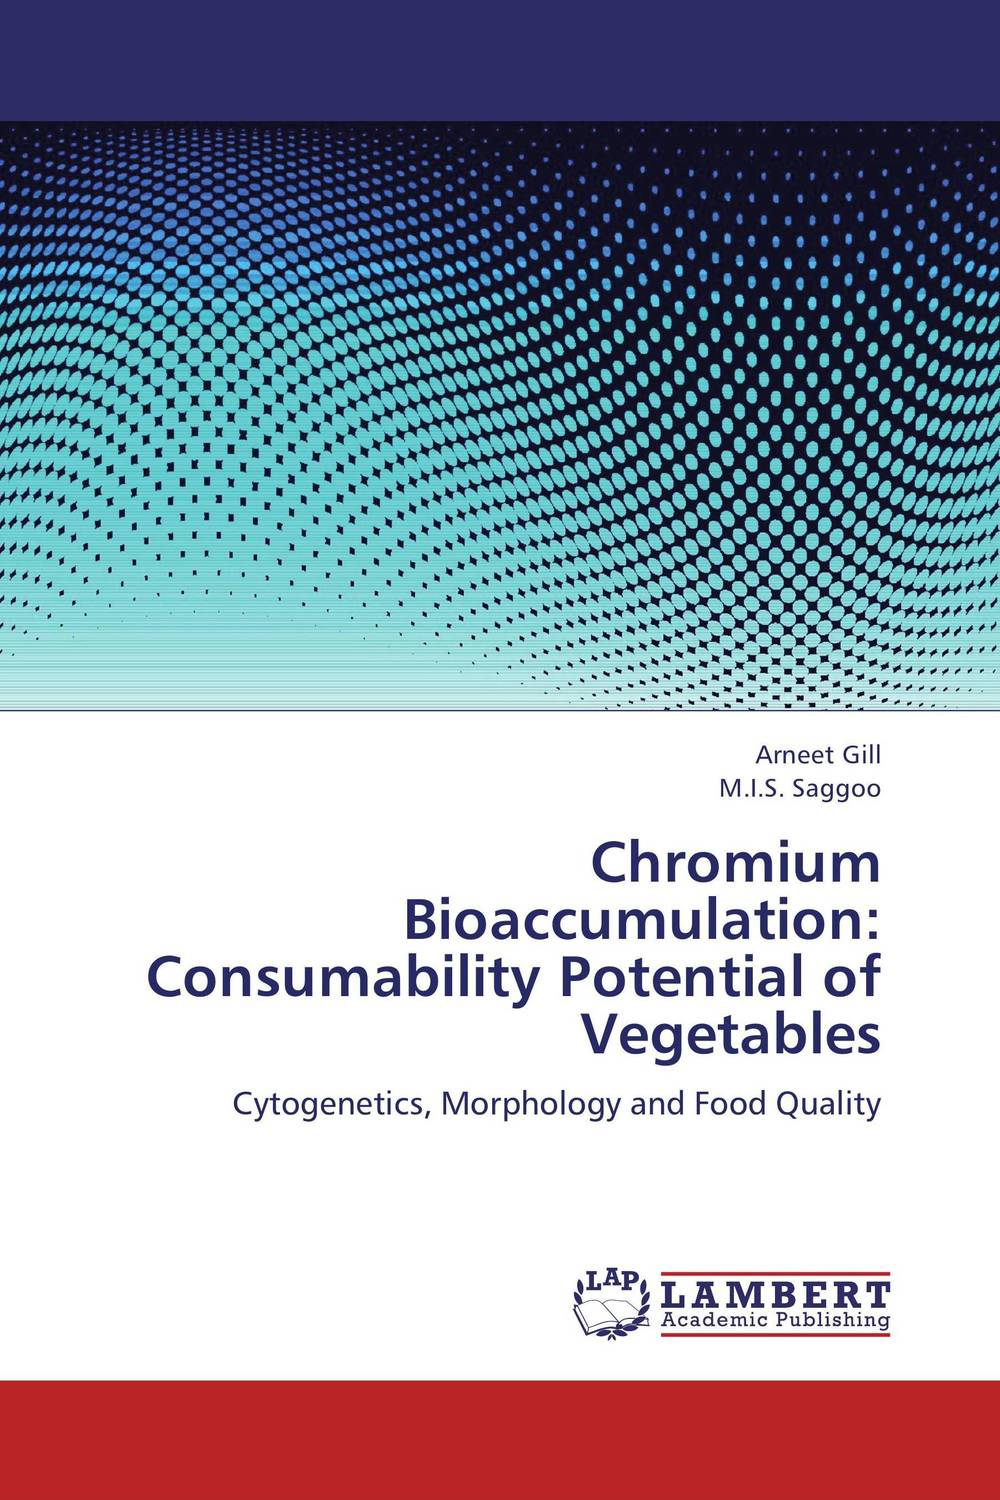 Chromium Bioaccumulation: Consumability Potential of Vegetables erin muschla teaching the common core math standards with hands on activities grades k 2